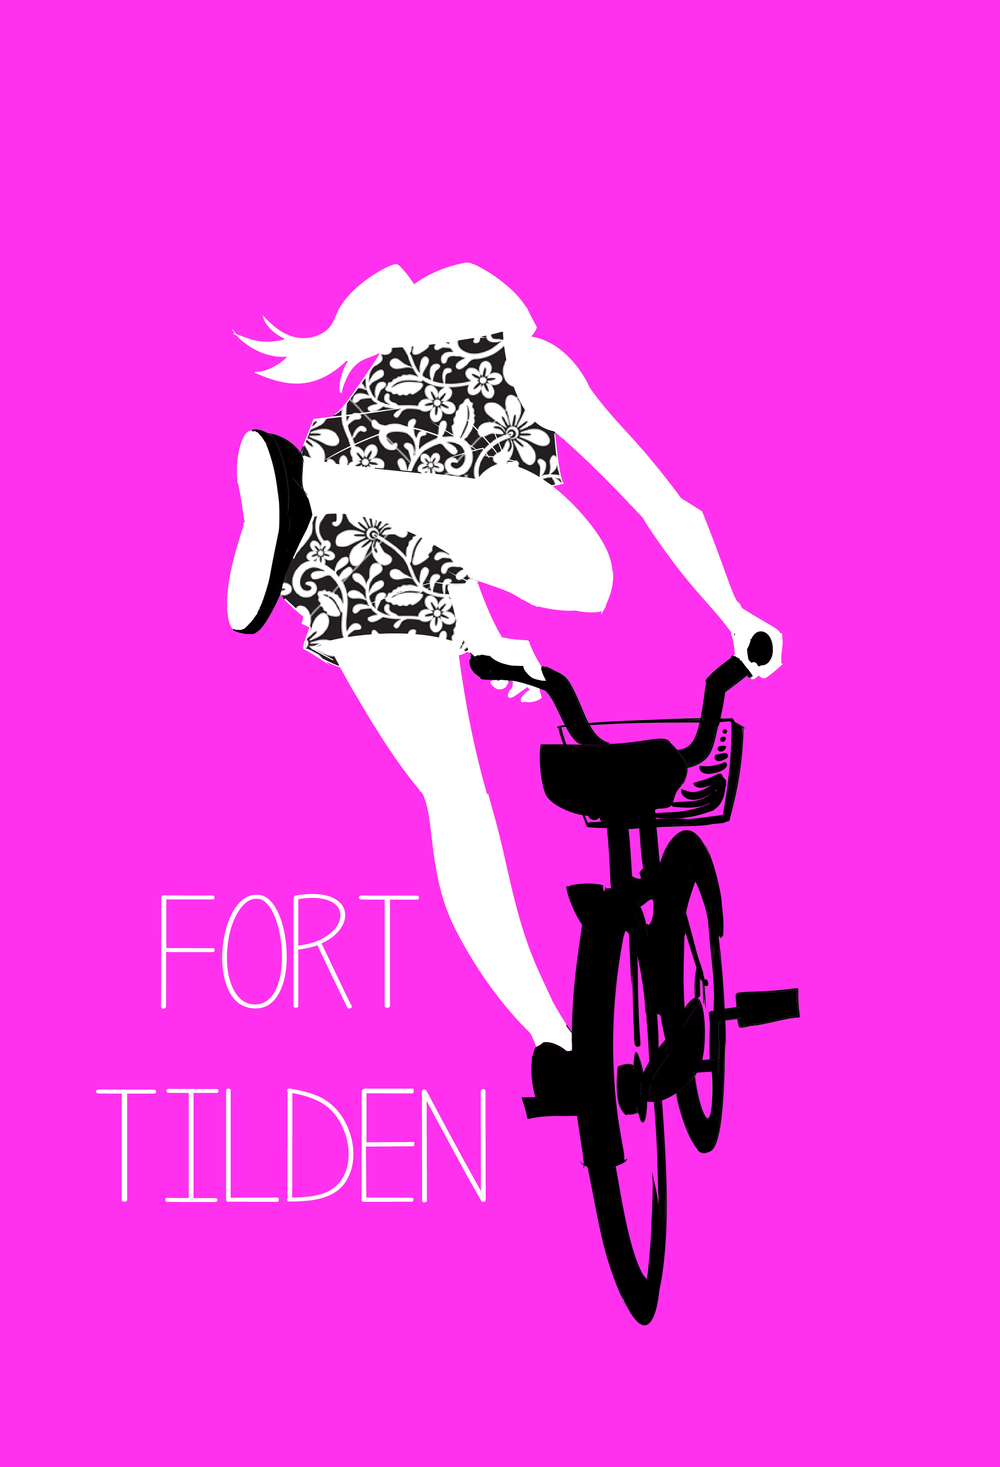 Fort Tilden Alternate Movie Poster by Ben Matsuya